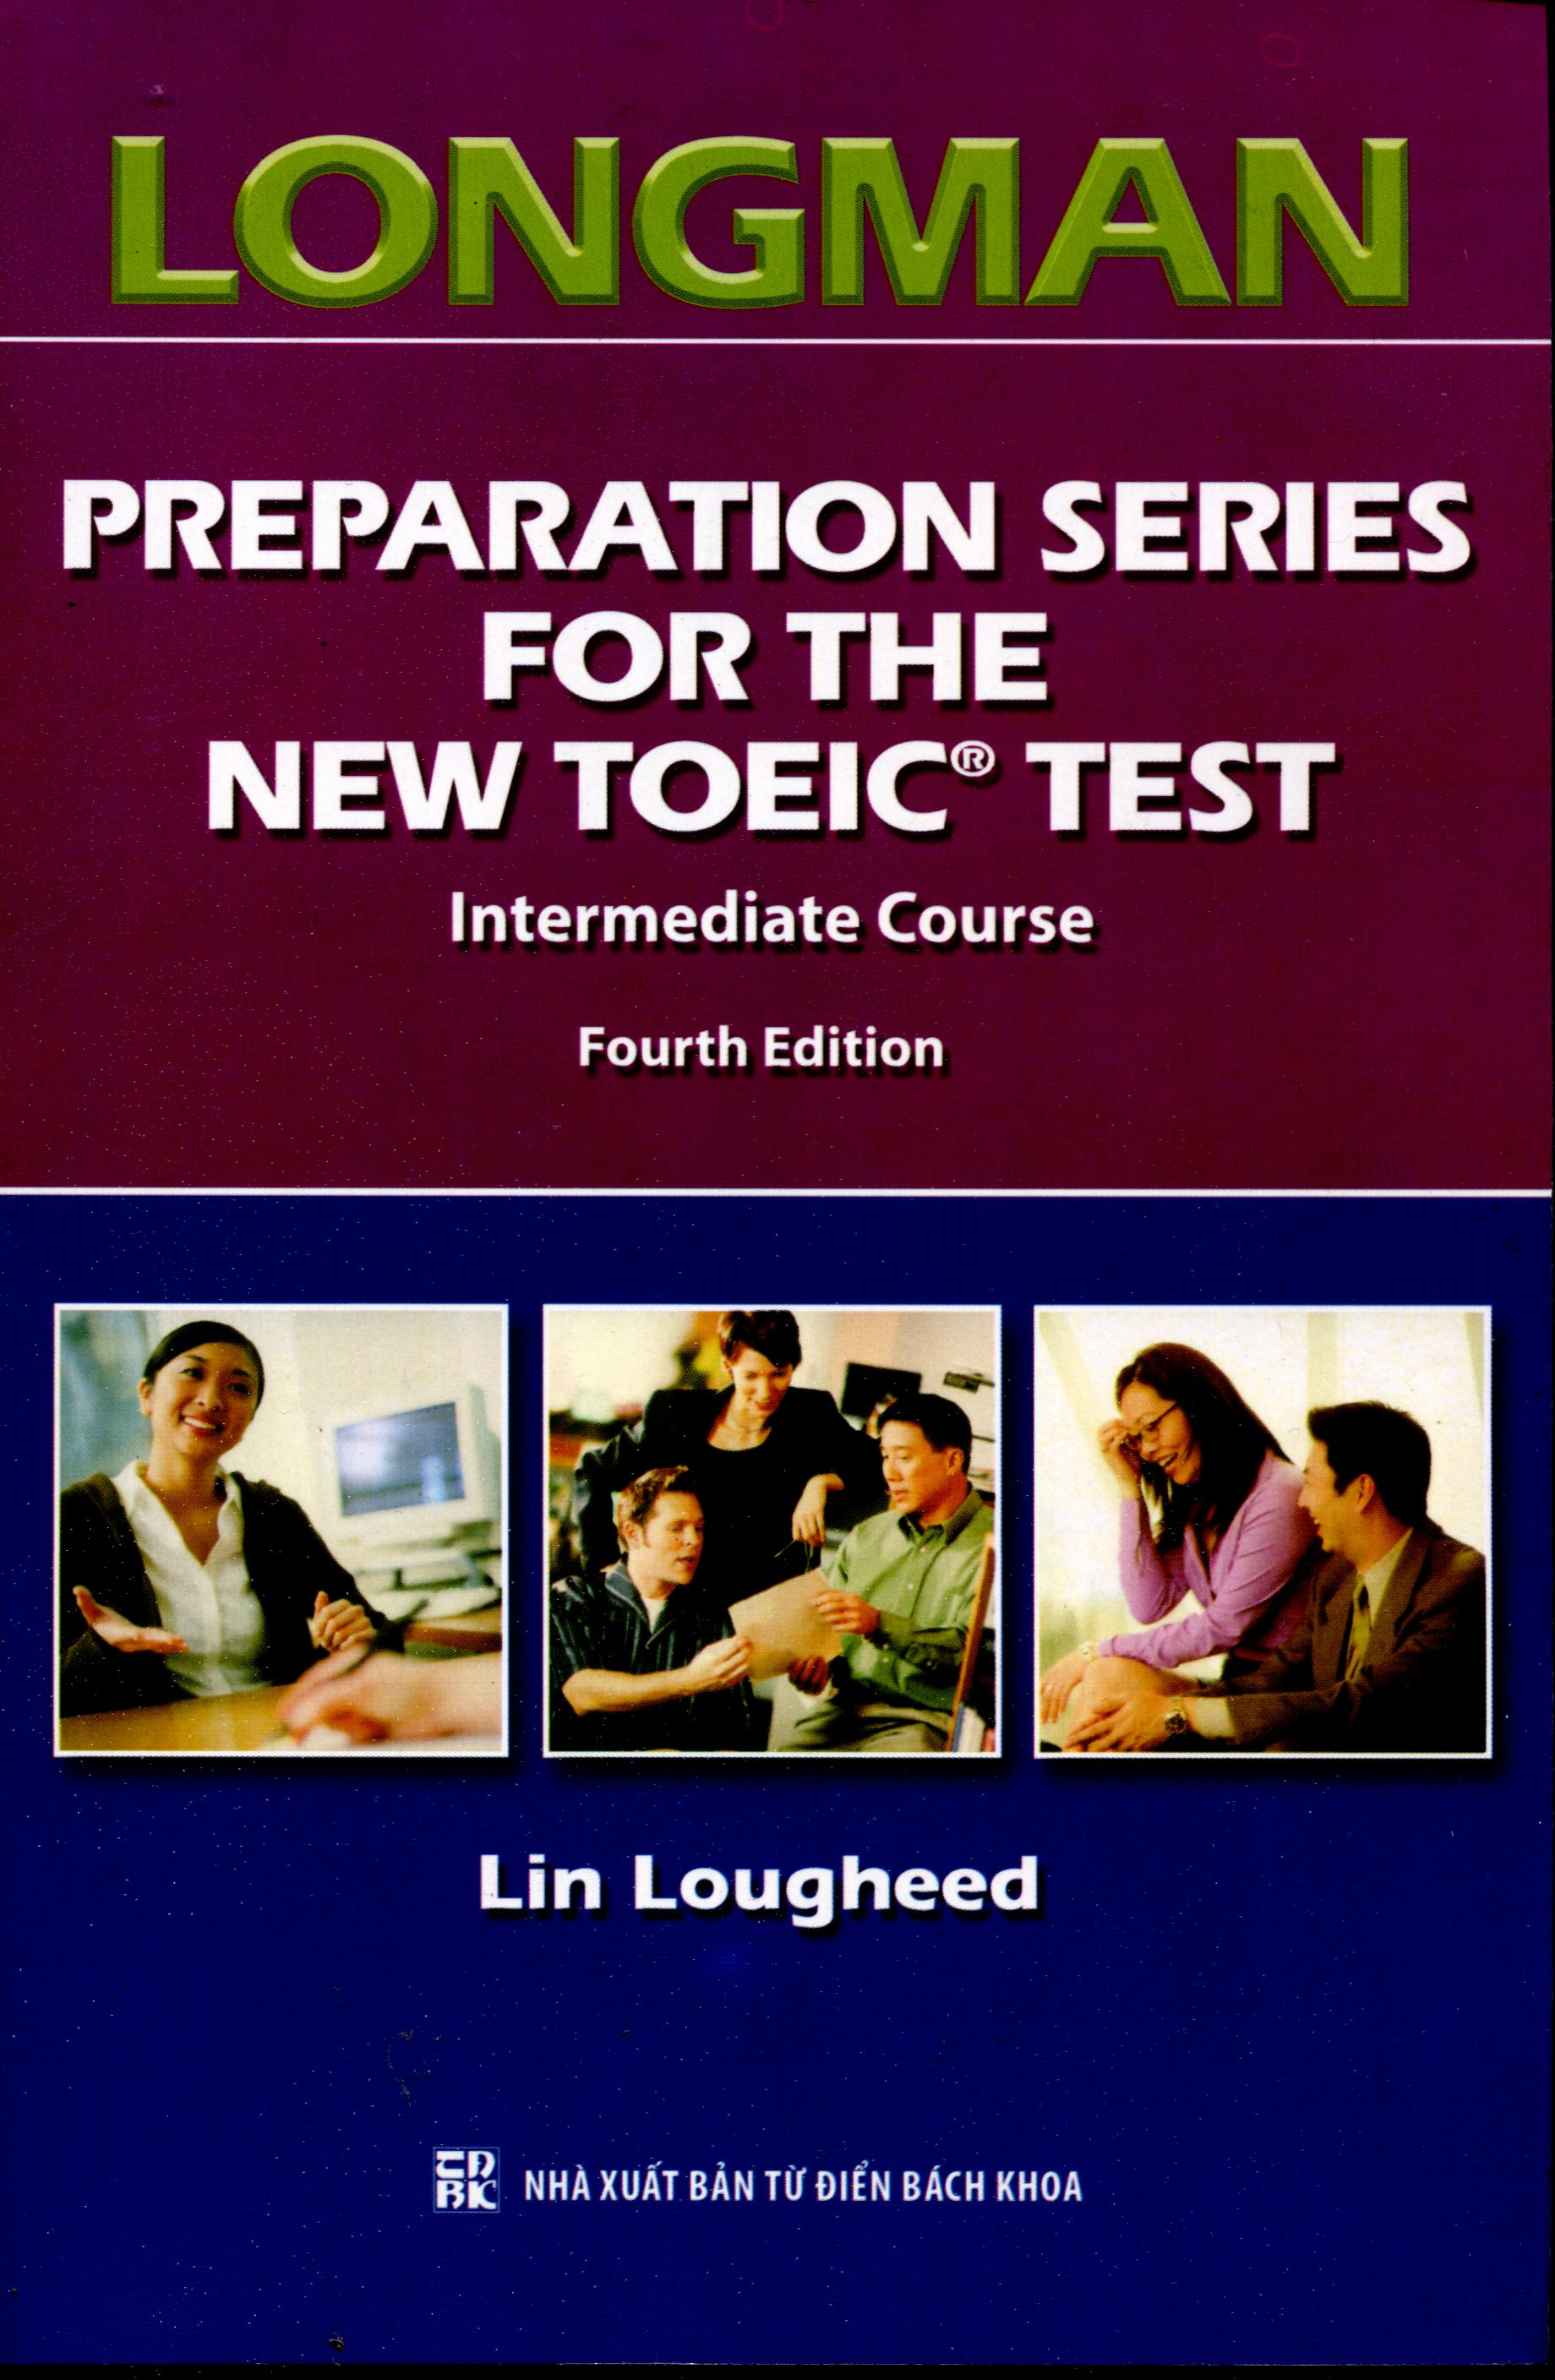 longman-preparation-series-for-the-new-toeic-test-intermediate-course-khong-cd_4666110910941852436